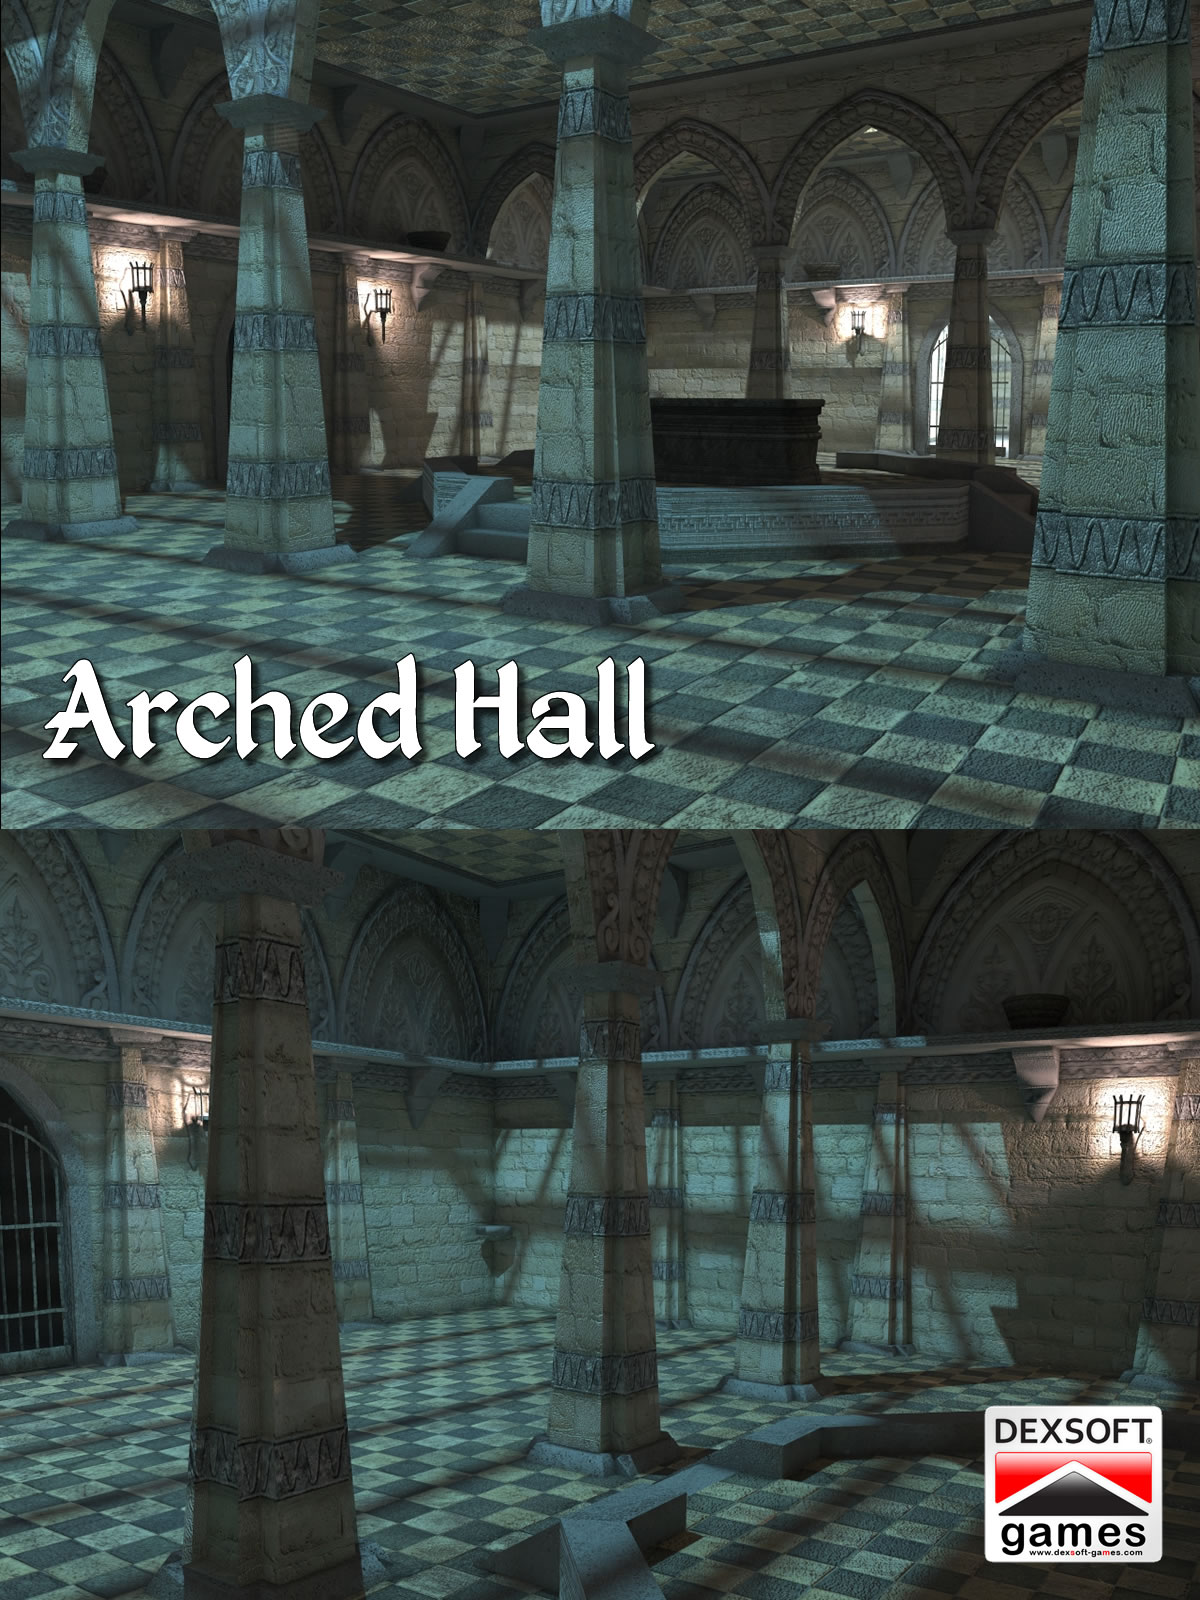 Arched Hall